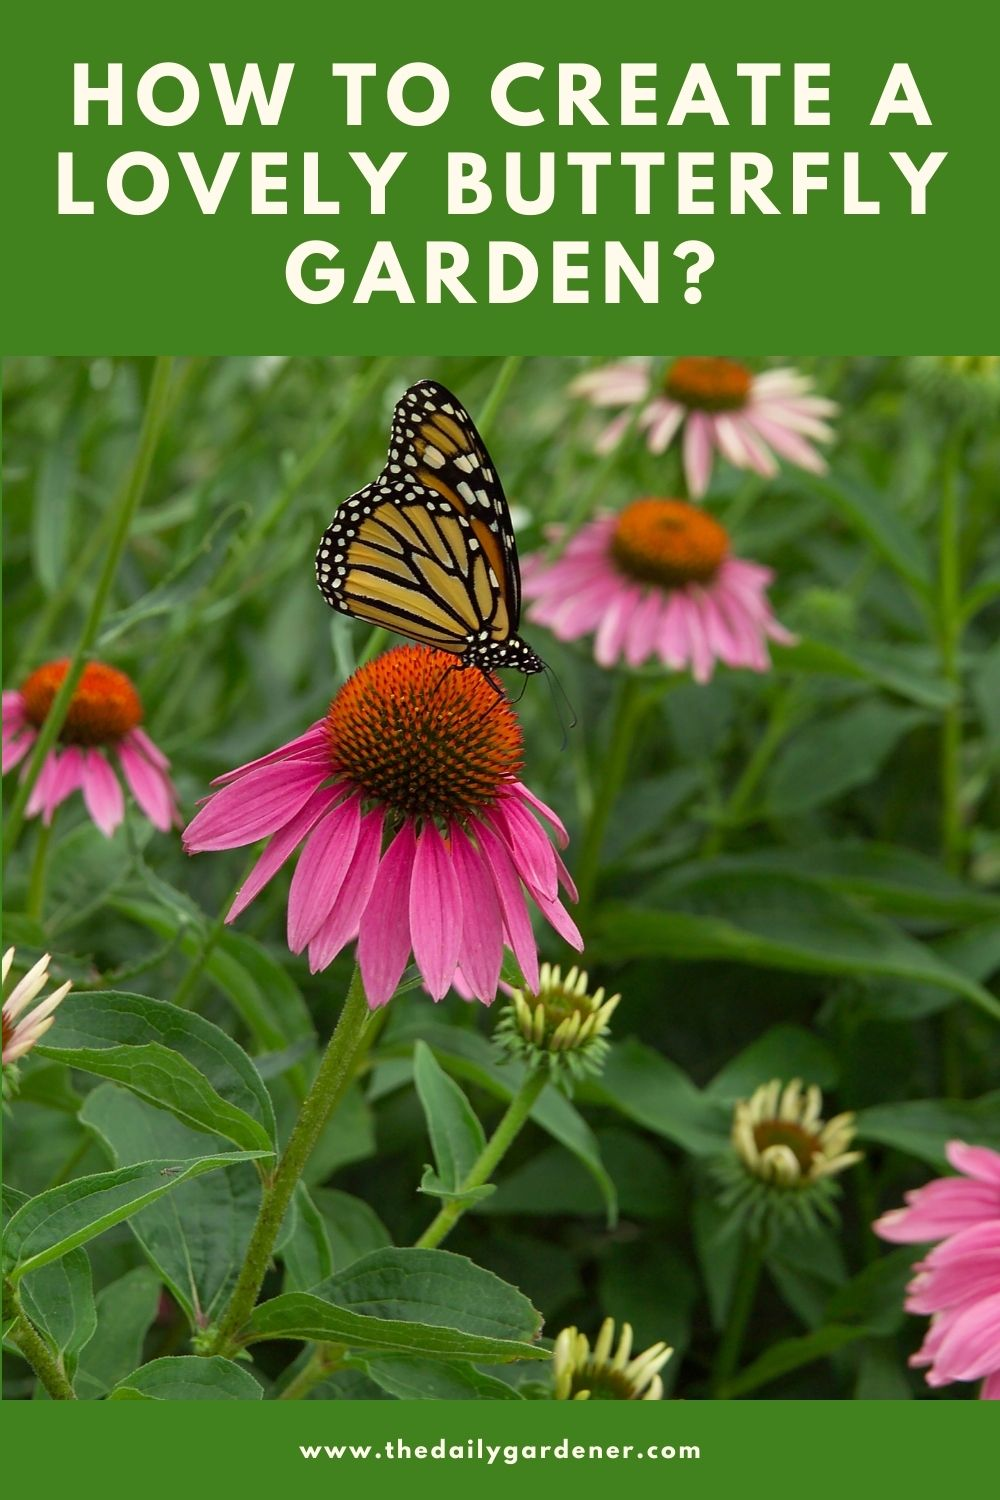 How to Create a Lovely Butterfly Garden 2